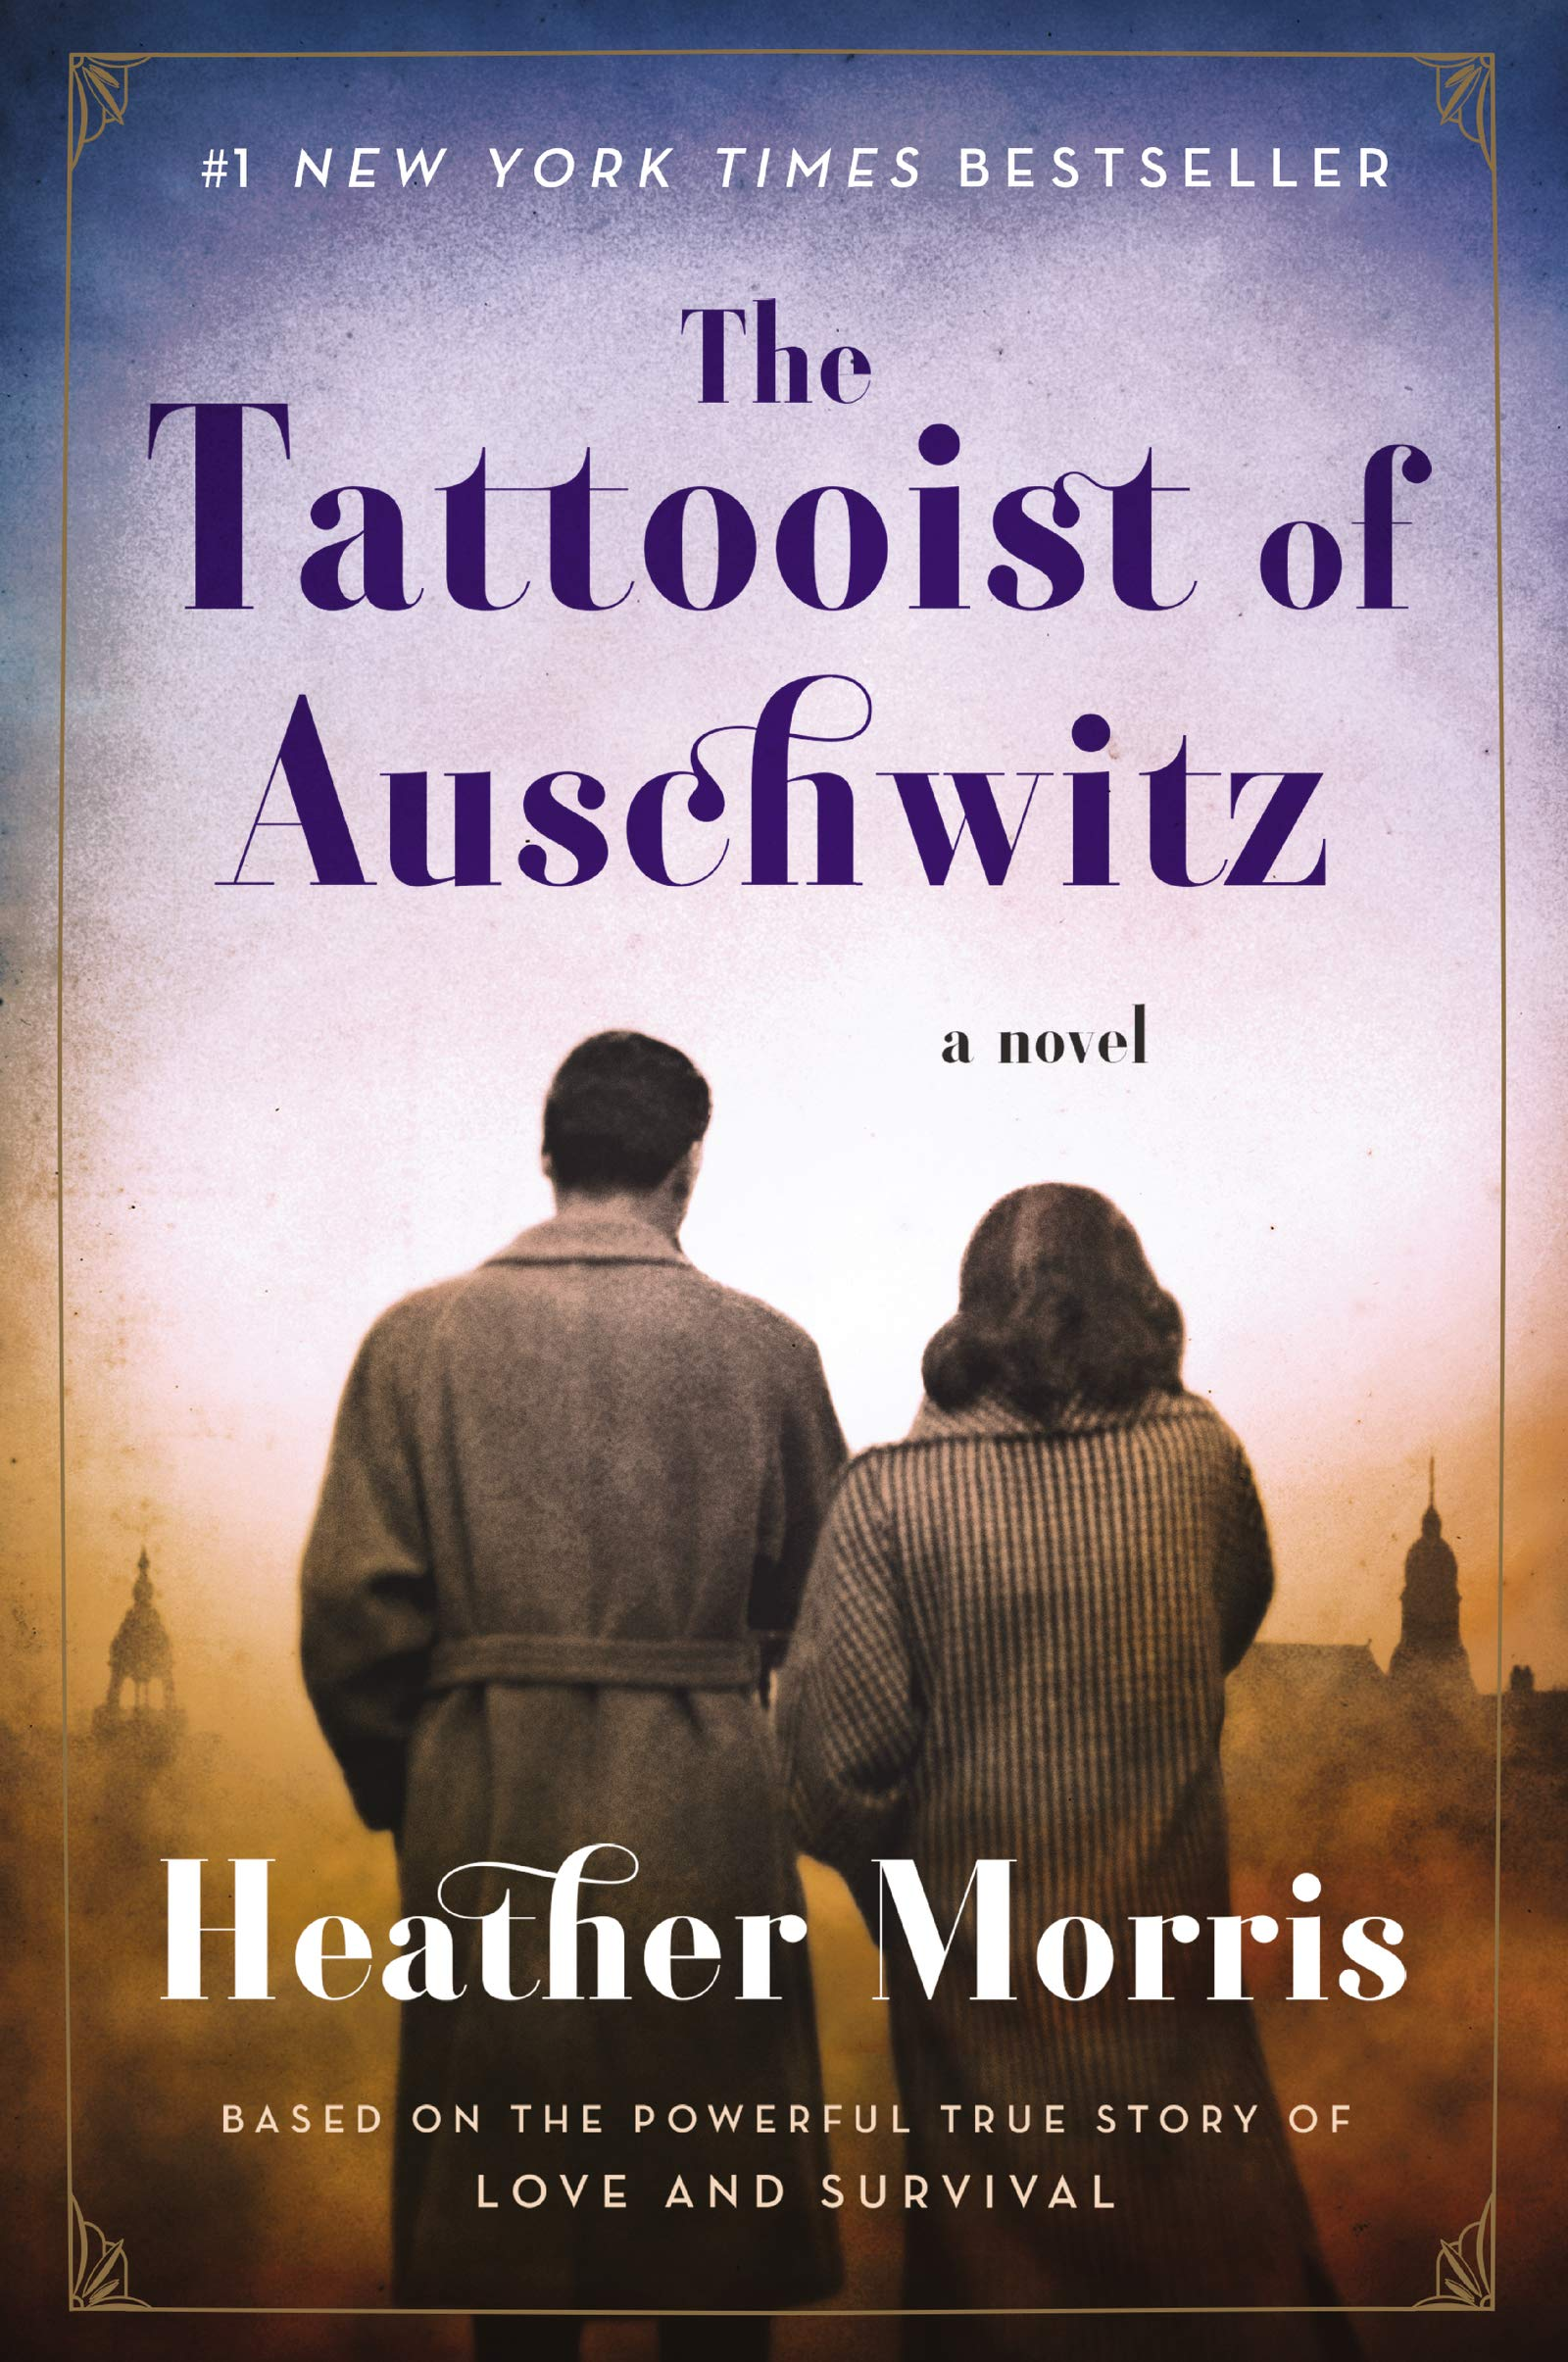 The Tattooist of Auschwitz. So so good.